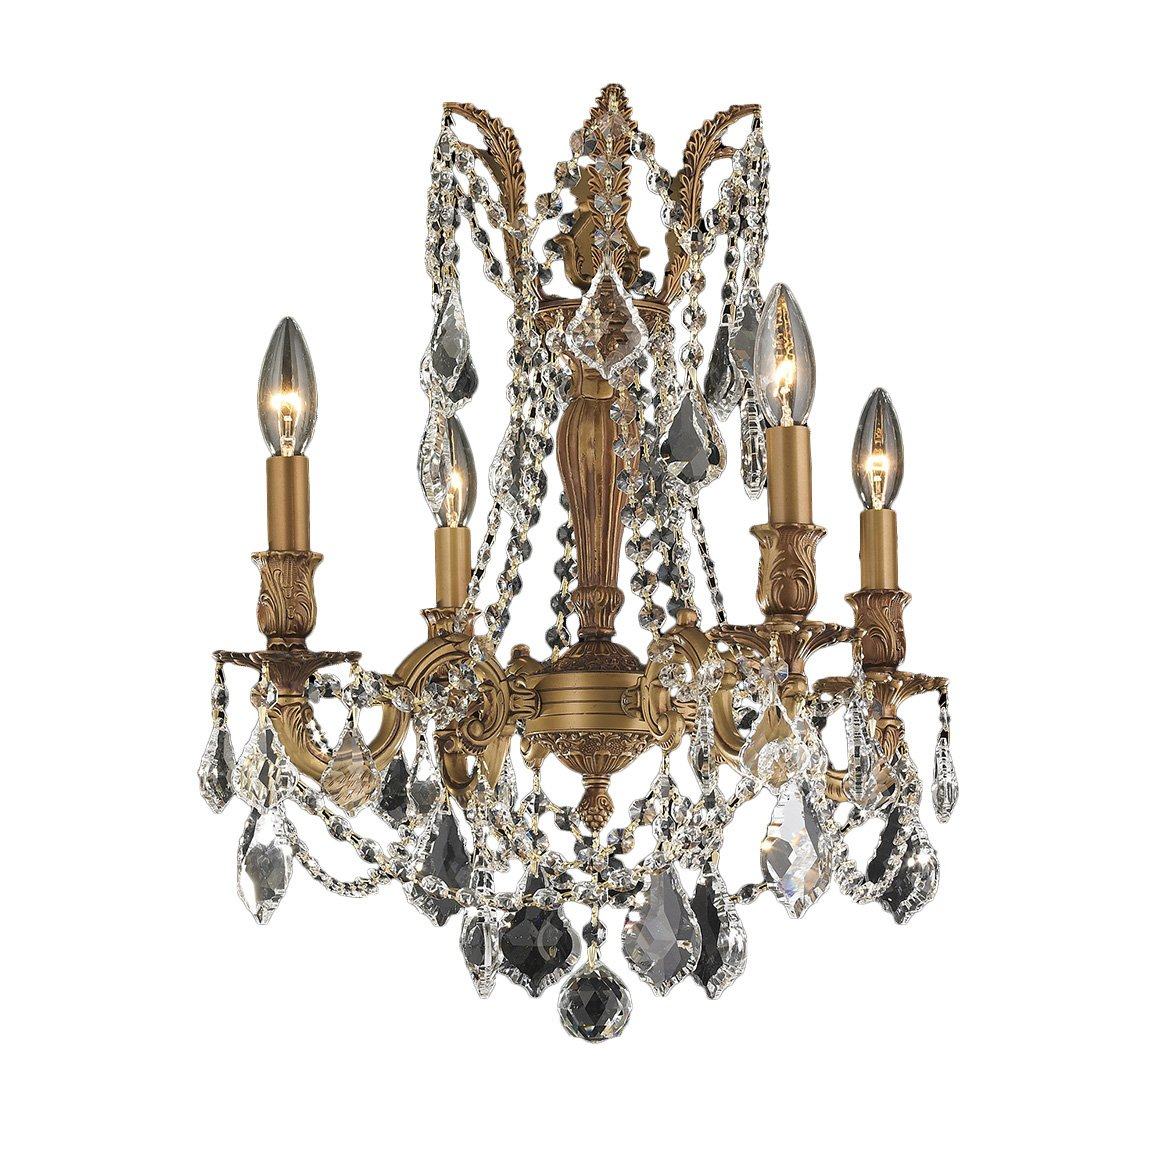 Worldwide Lighting Windsor Collection 4 Light French Gold Finish and Clear Crystal Chandelier 17'' D x 21'' H Medium by Worldwide Lighting (Image #1)